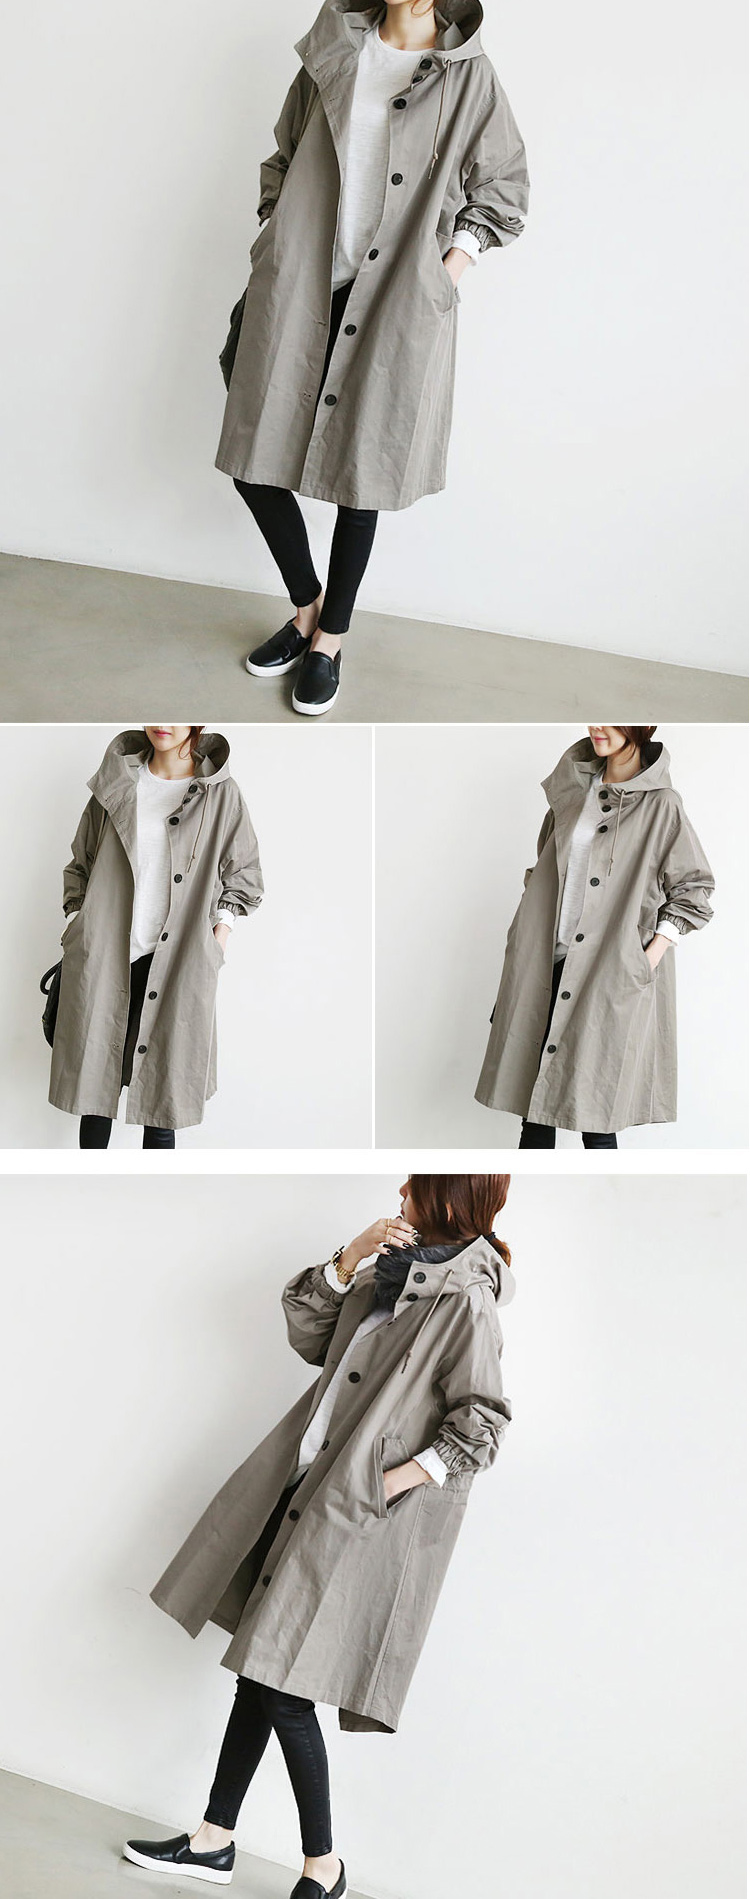 Cheap wholesale 19 new autumn winter Hot selling women's fashion netred casual Ladies work wear nice Jacket MW184 8